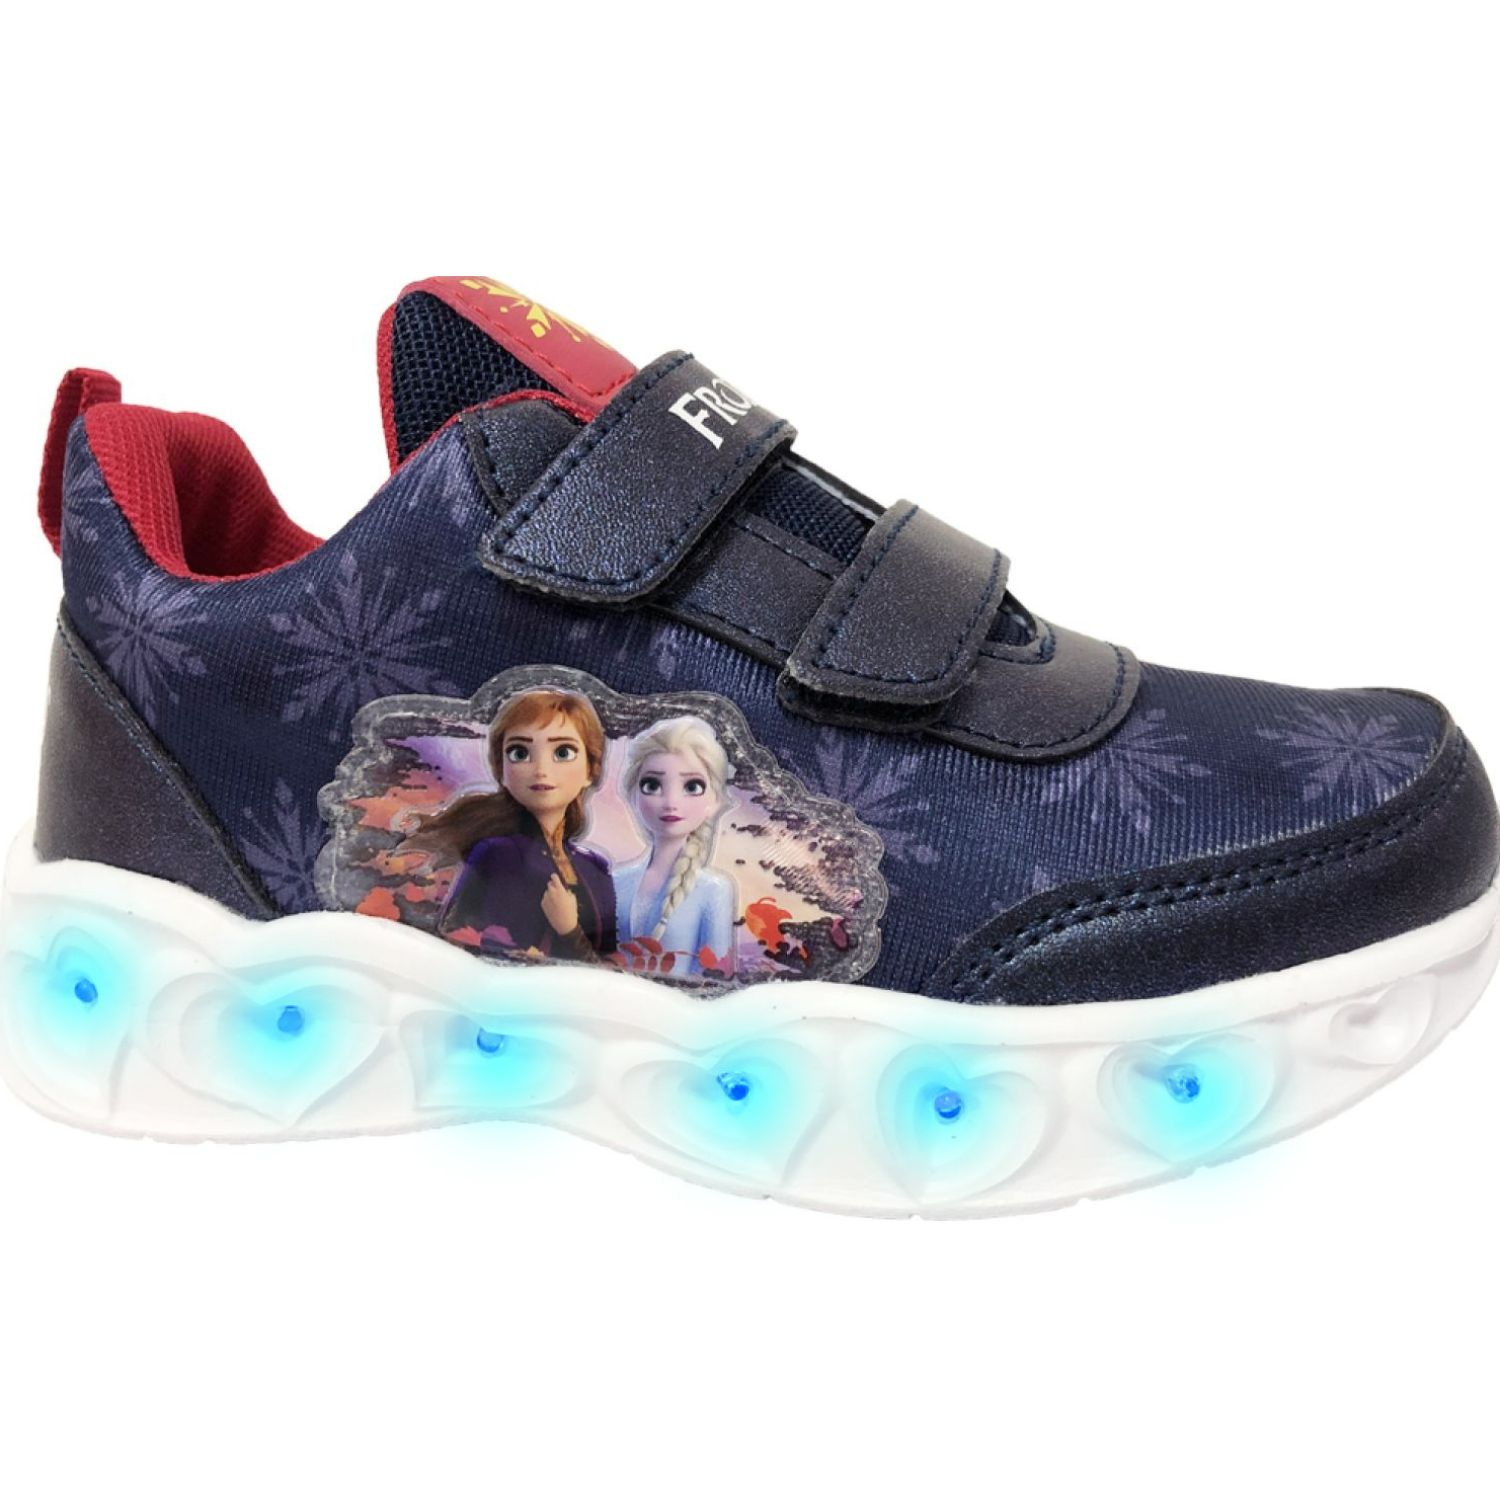 Frozen zapatilla parche frozen ii Navy / Rojo Walking